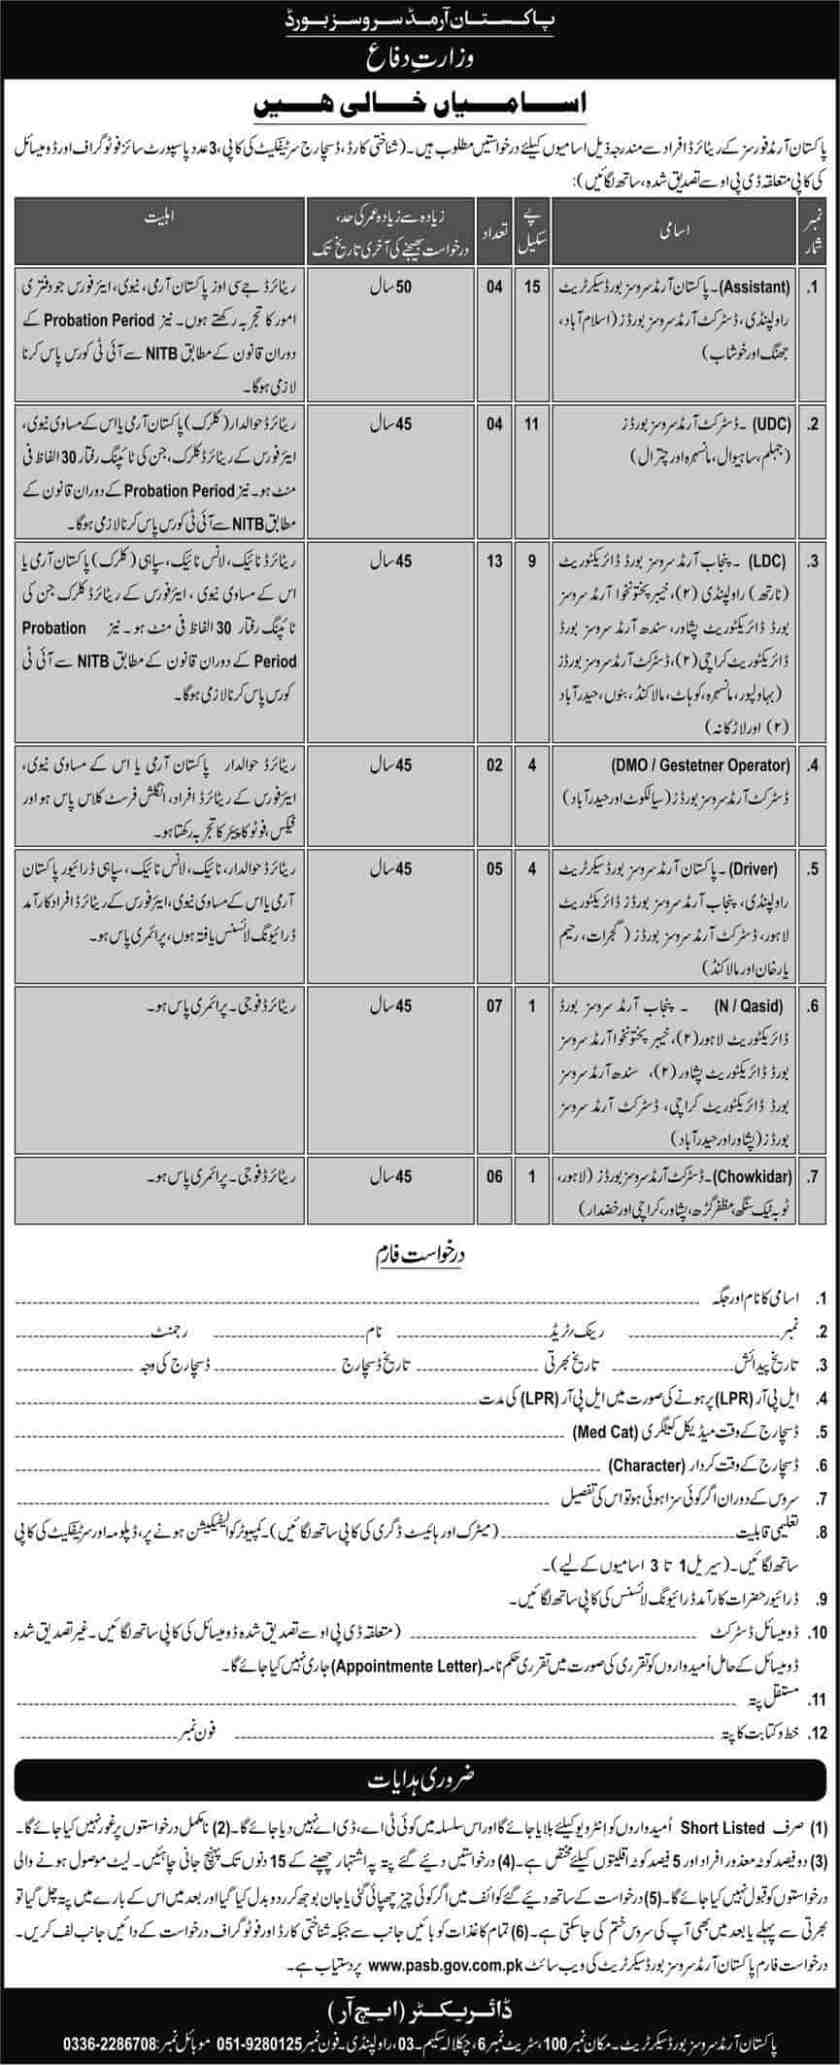 Ministry ofDefenceMOD Jobs 2021Latest